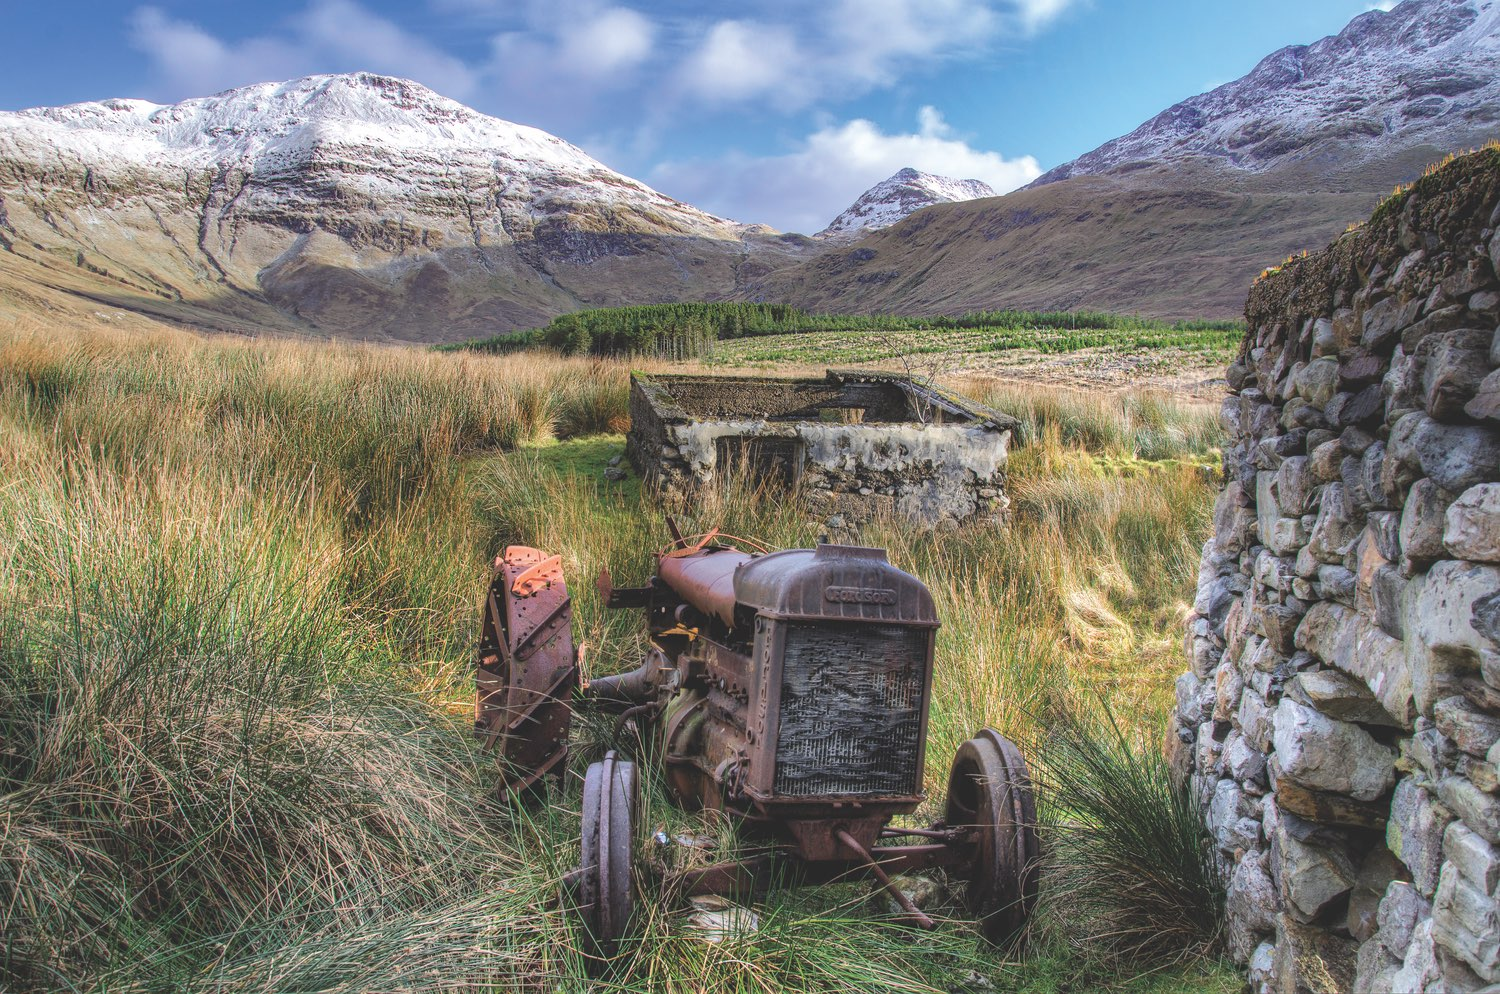 """""""After a nice hike through the bog I spotted this cottage and went for a closer look. I spotted the old Fordson tractor and knew this would make an interesting focal point to amazing mountains in the background."""" Taken at the foothills of Benbaun in Connemara. Photo by Trevor Dubber"""